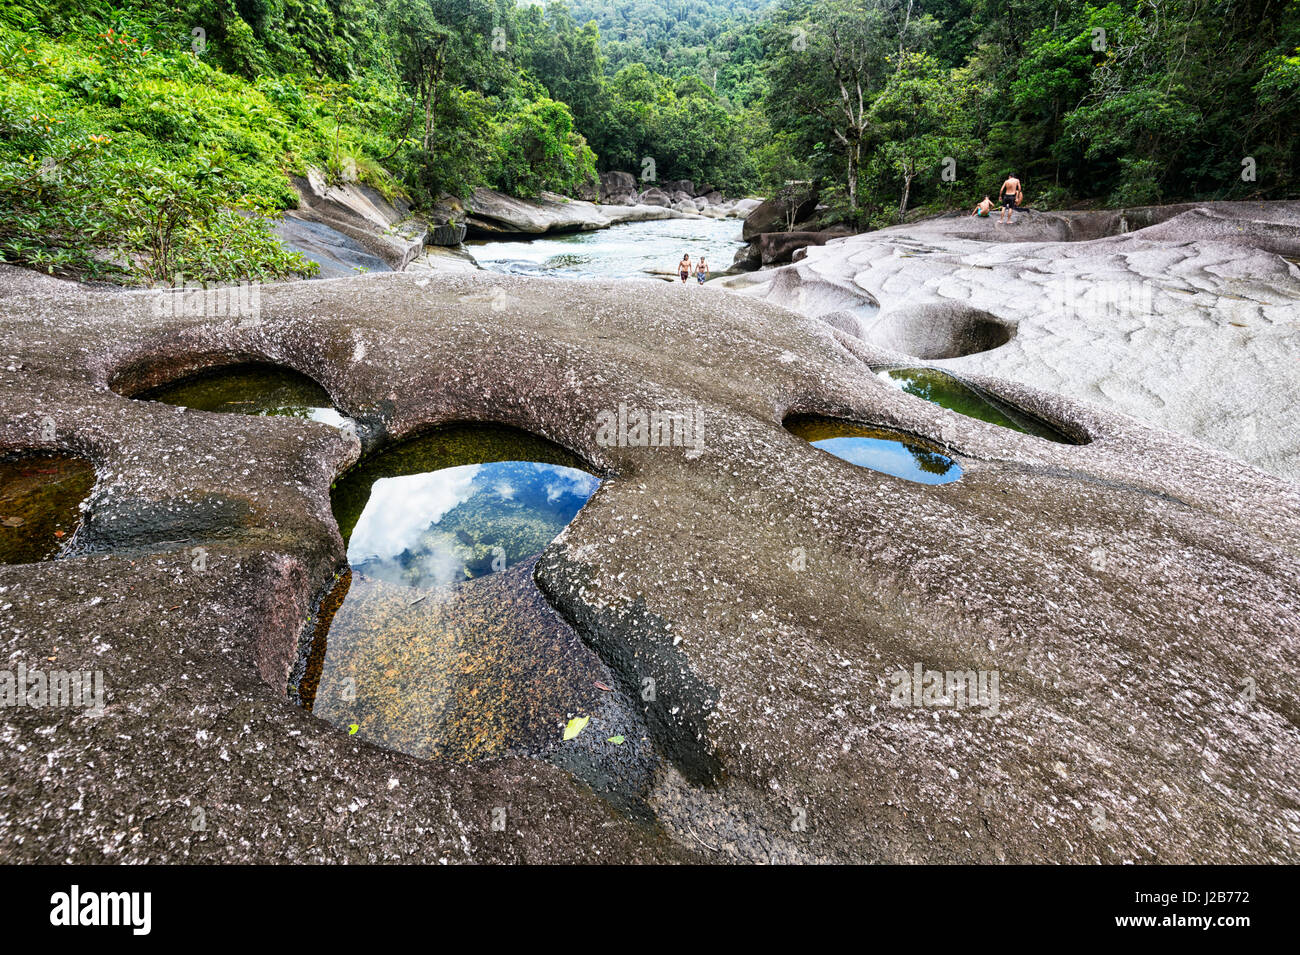 Babinda Boulders, une attraction touristique populaire et la place, près de Cairns, Queensland, Queensland, Photo Stock